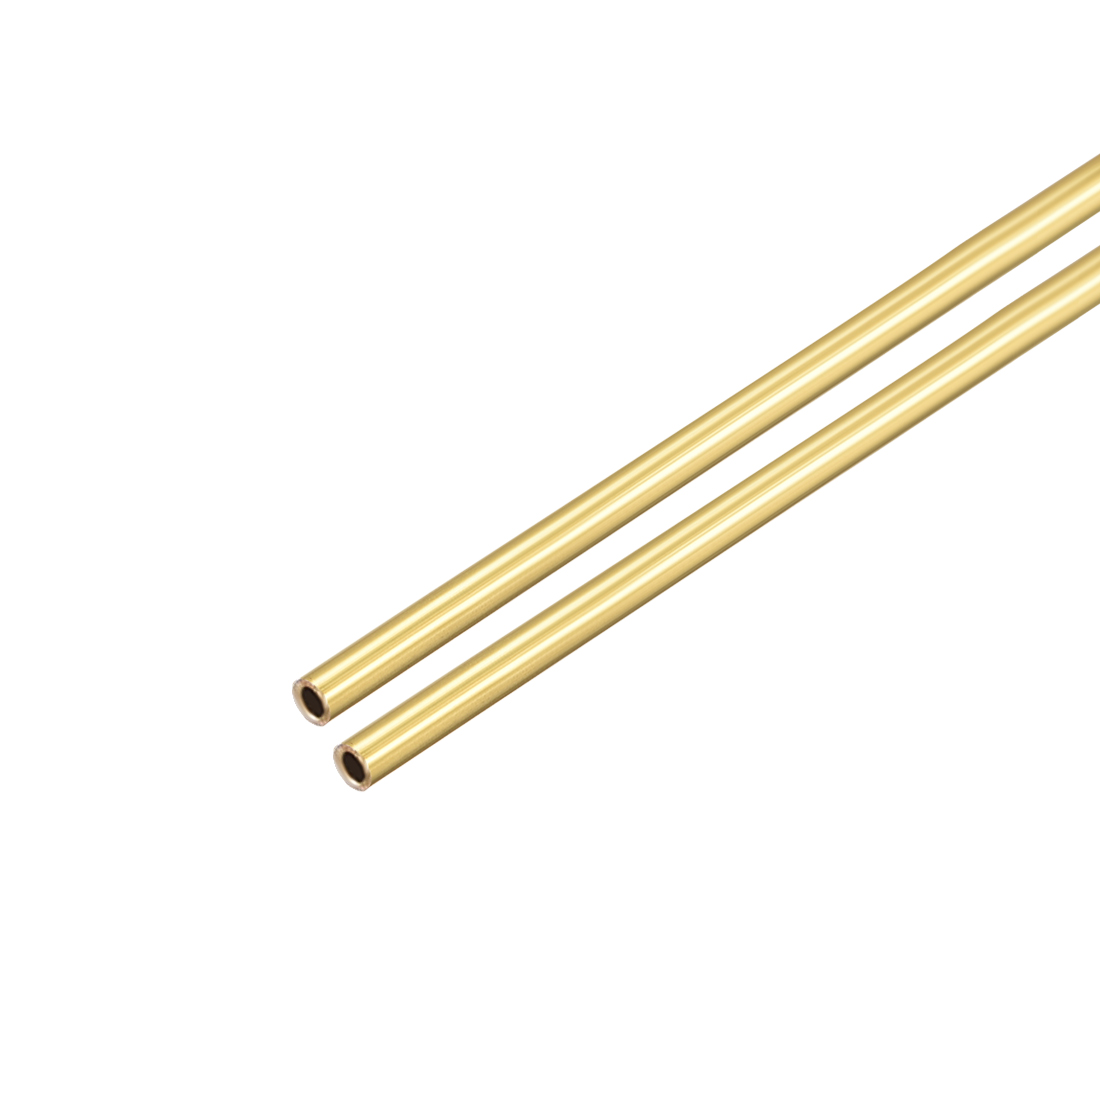 Uxcell Brass Round Tube 300mm Length 1mm OD 0.2mm Wall Thickness Seamless Straight Pipe Tubing 2 Pcs